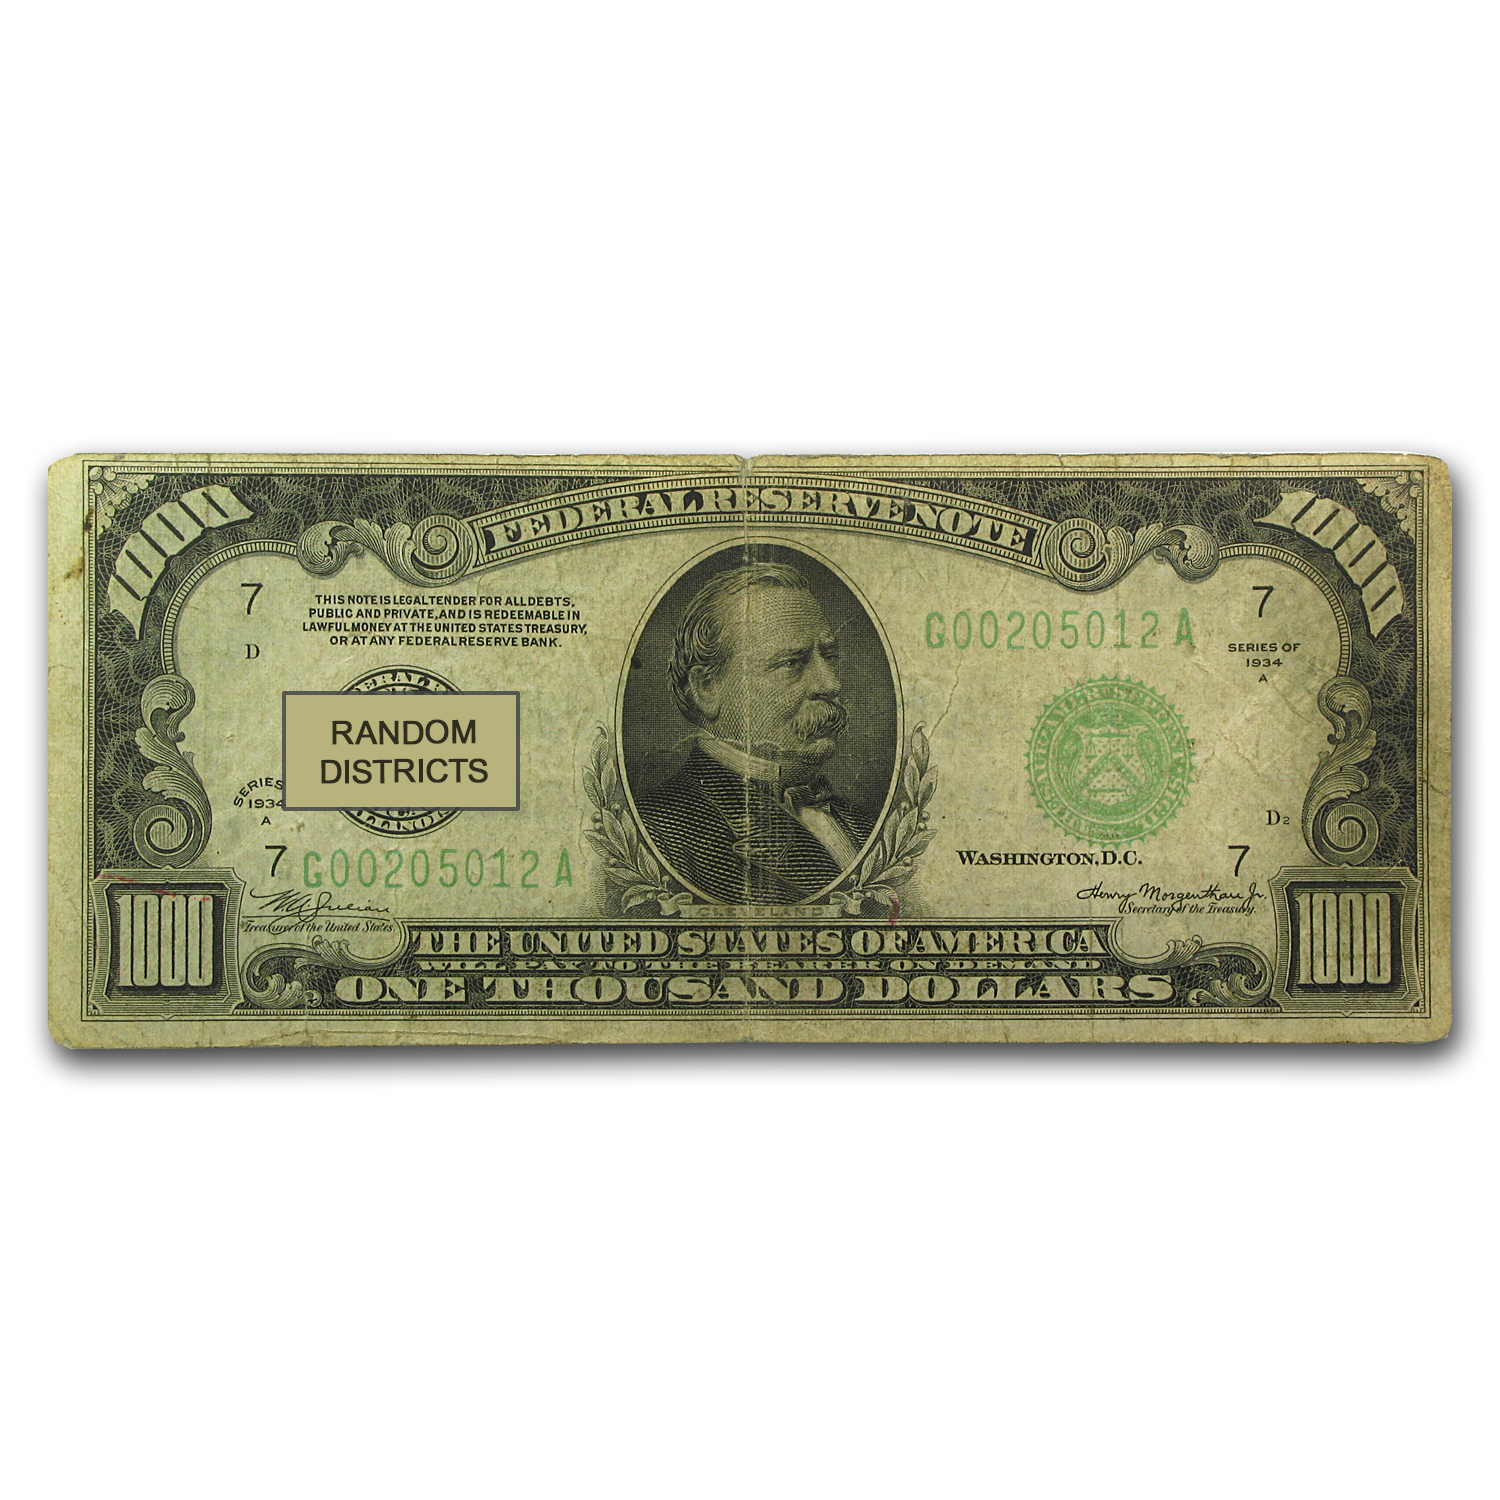 1934/34-A $1,000 FRN Good/VG - (Districts of Our Choice)